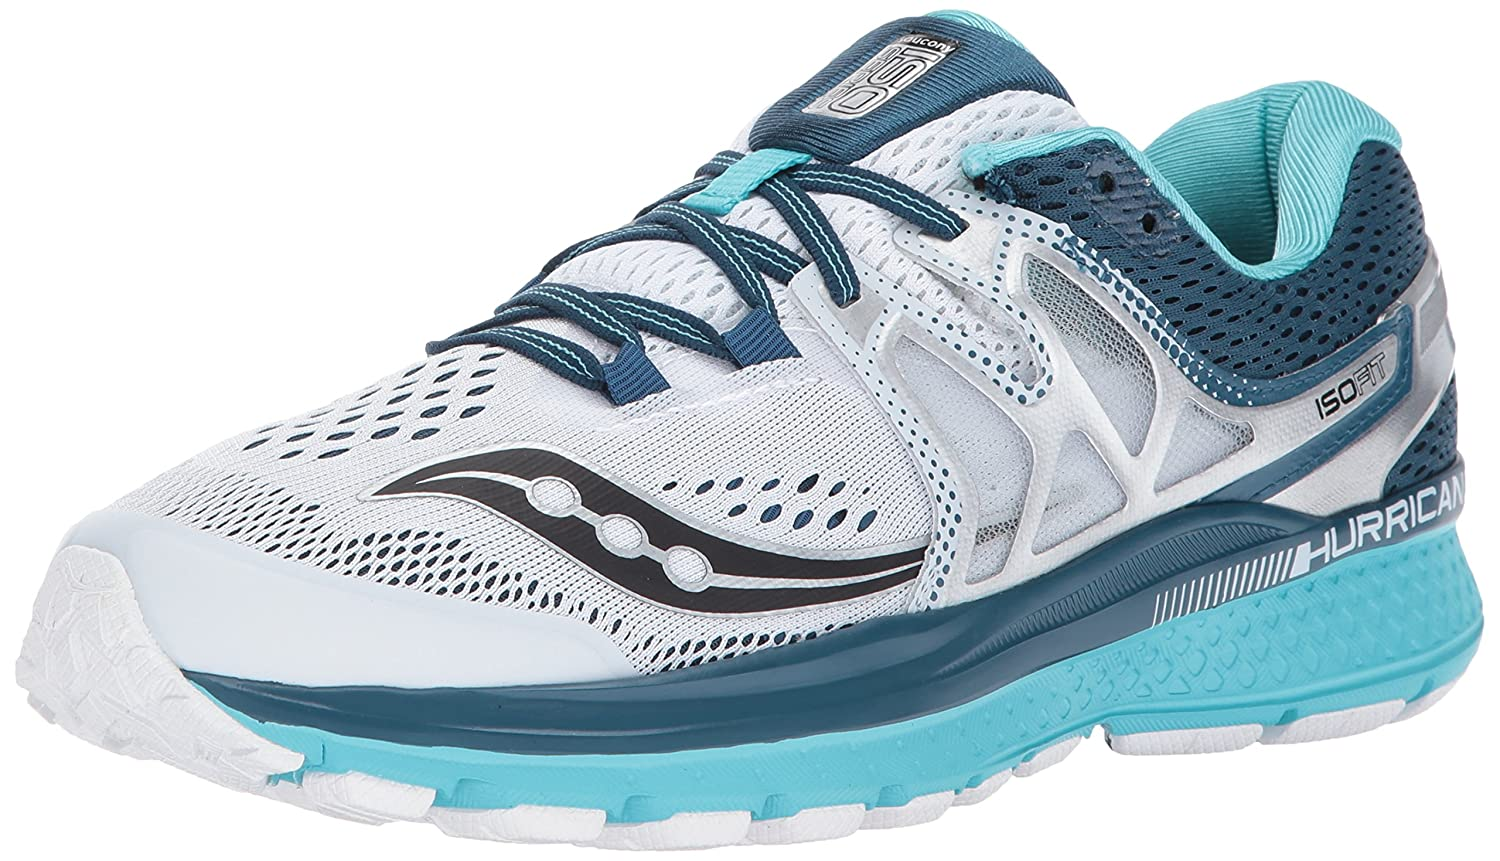 Saucony Women's Hurricane ISO 3 Running Shoe B01N7KW63F 6.5 B(M) US|White Teal